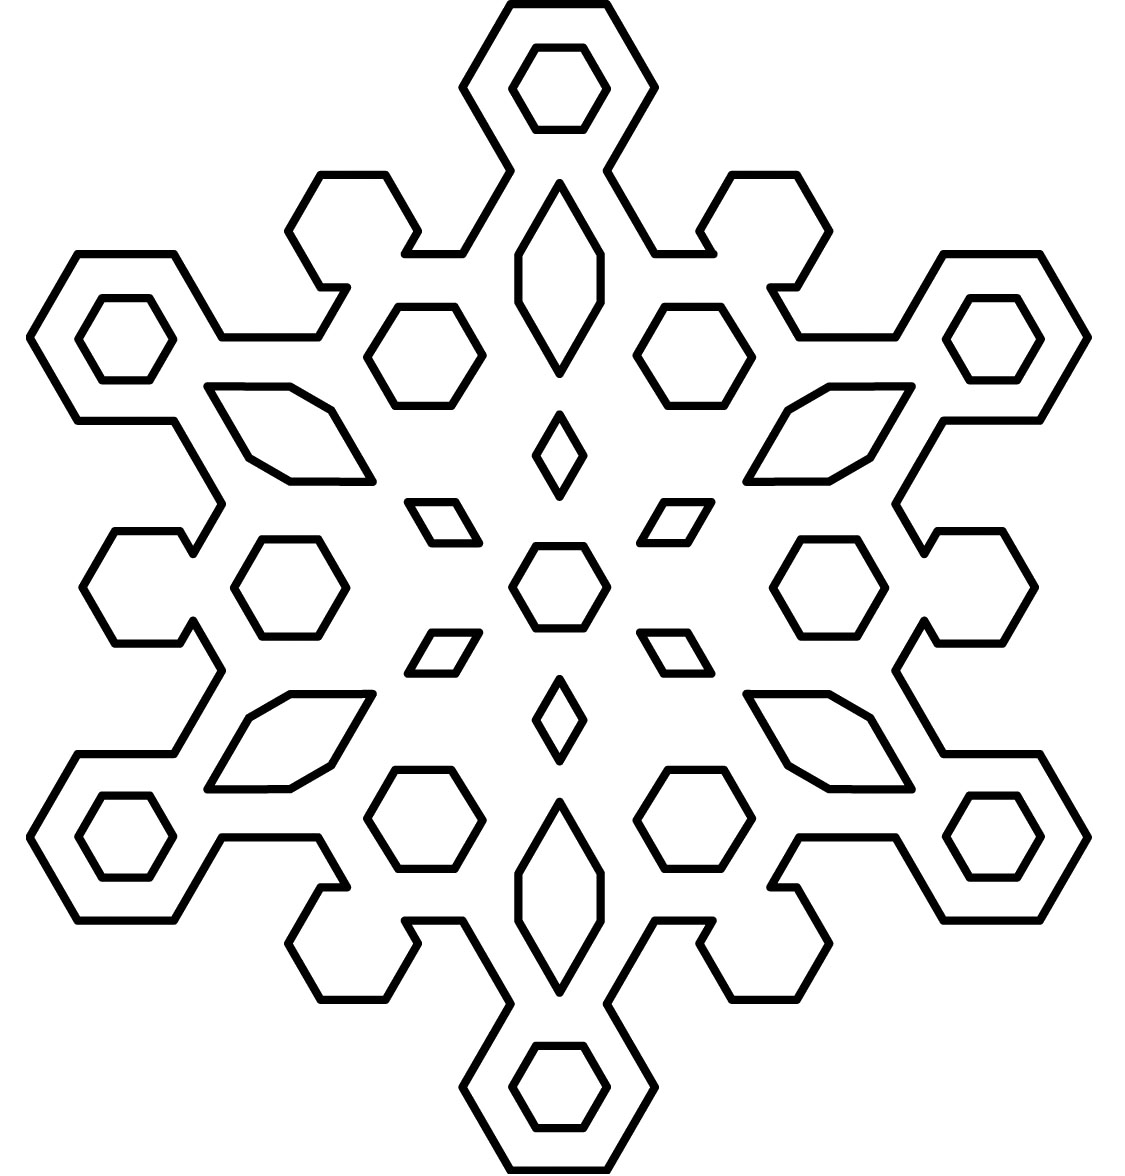 snowflake pictures to color free printable snowflake coloring pages for kids to color pictures snowflake